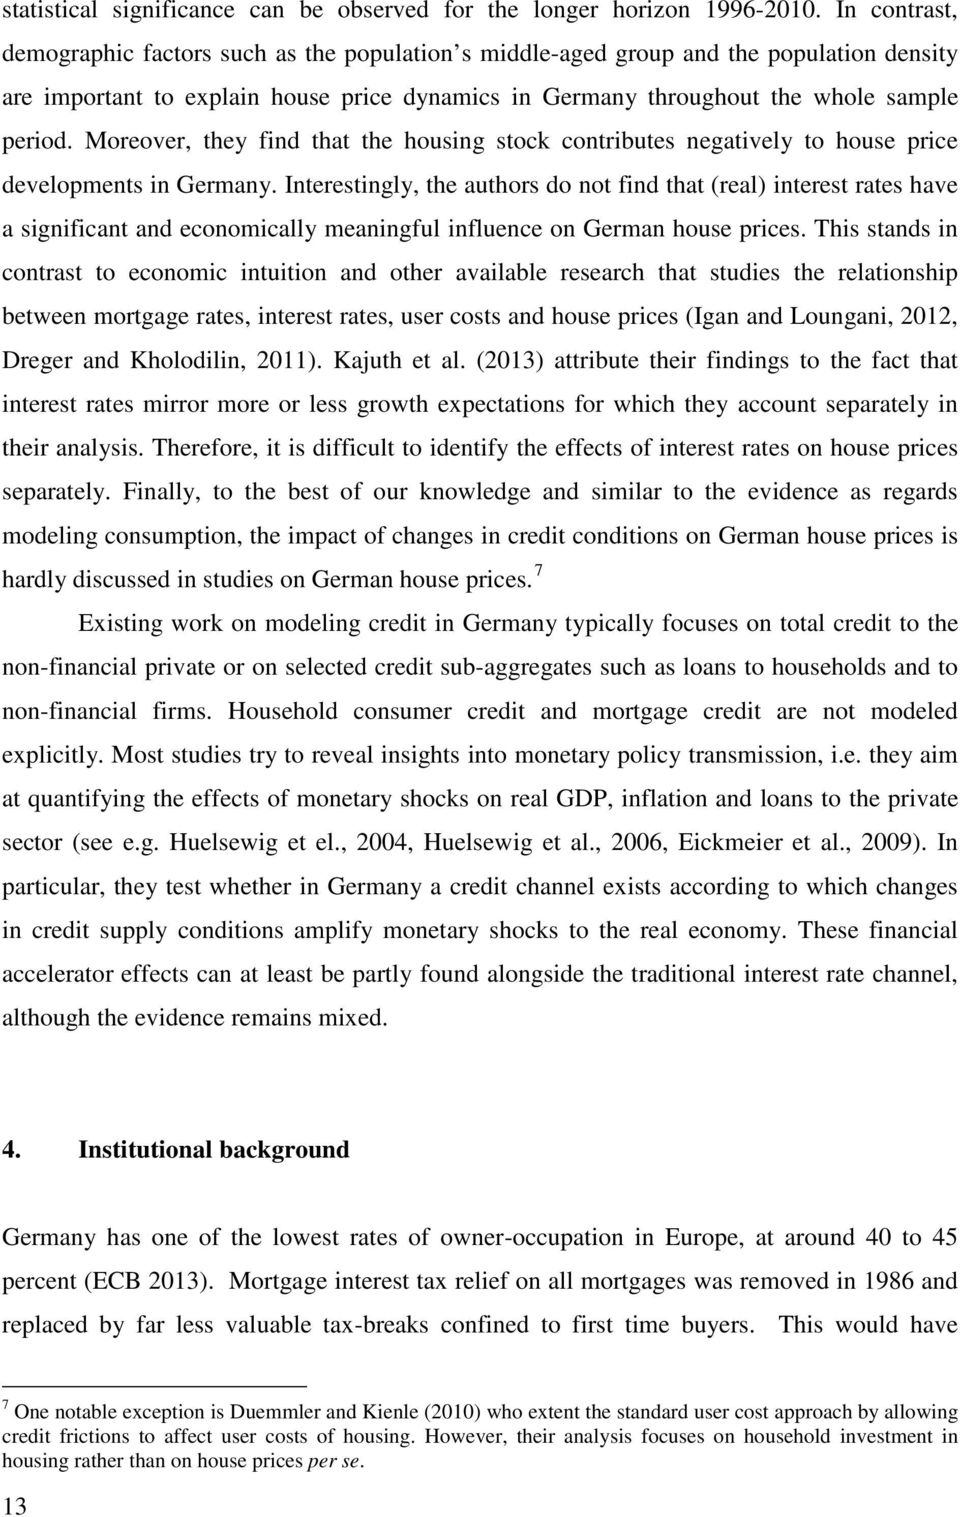 Moreover, they find that the housing stock contributes negatively to house price developments in Germany.